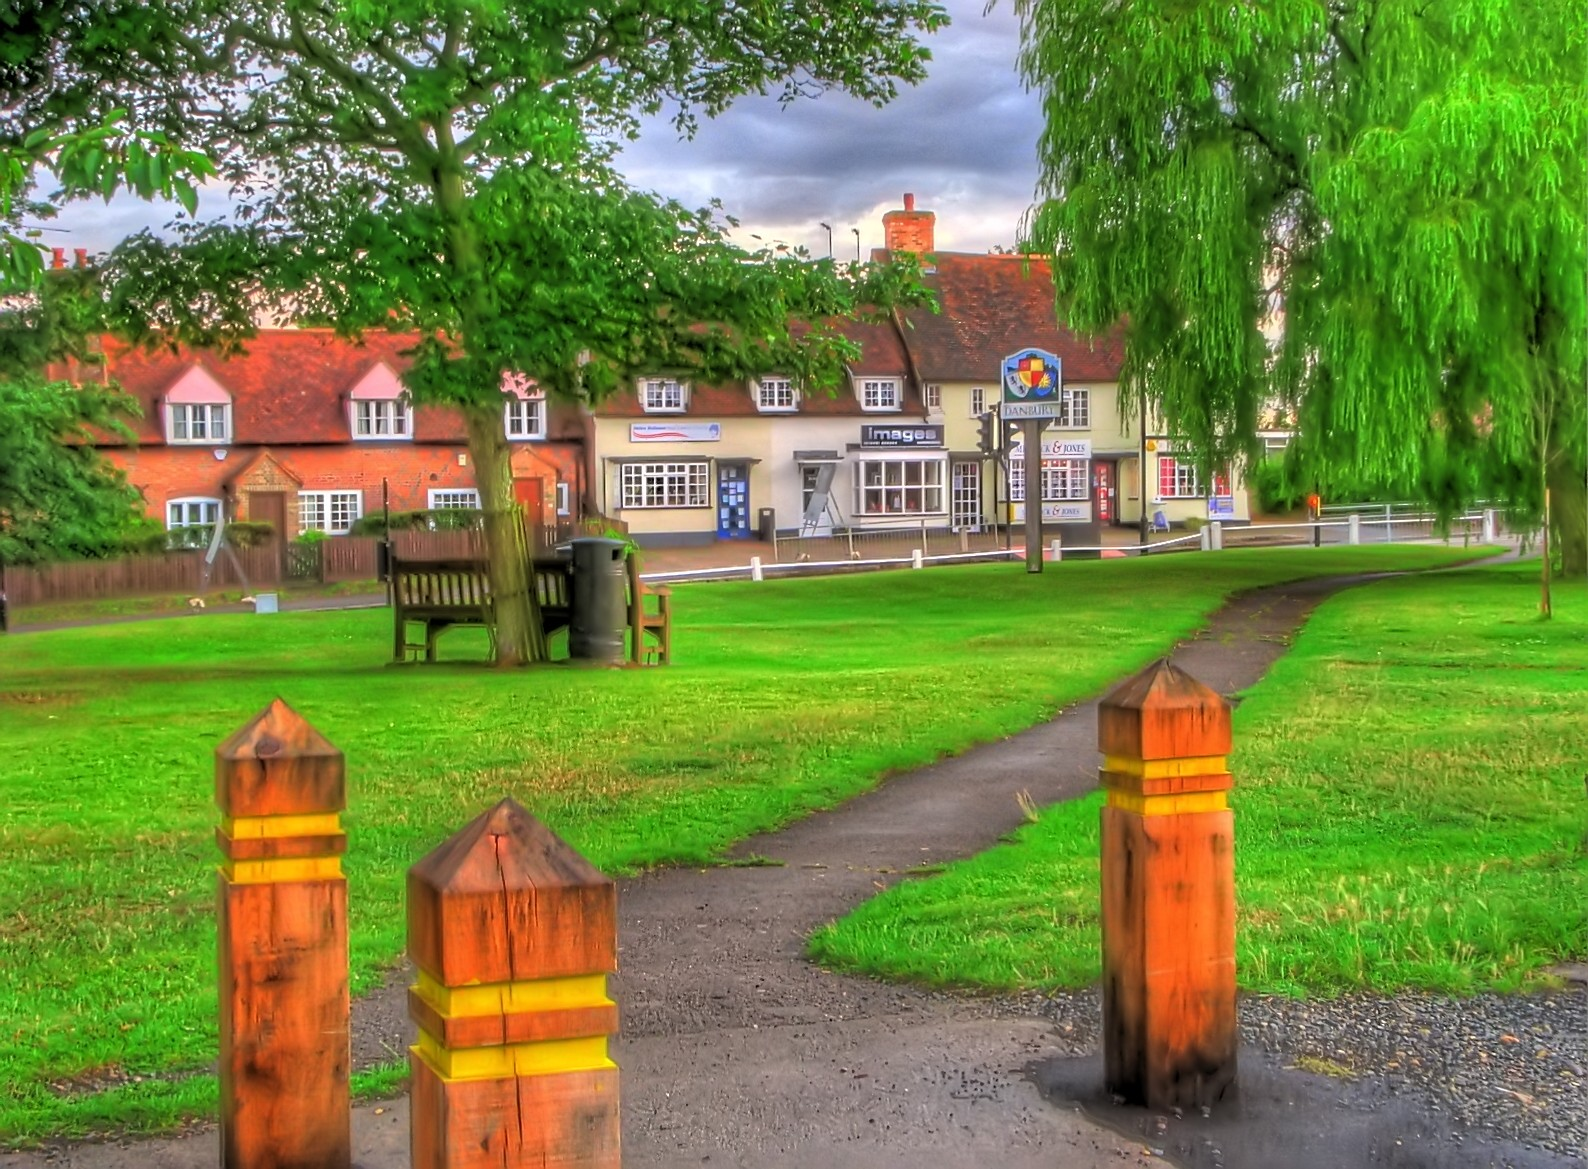 Danbury village essex. | Flickr - Photo Sharing!danbury village